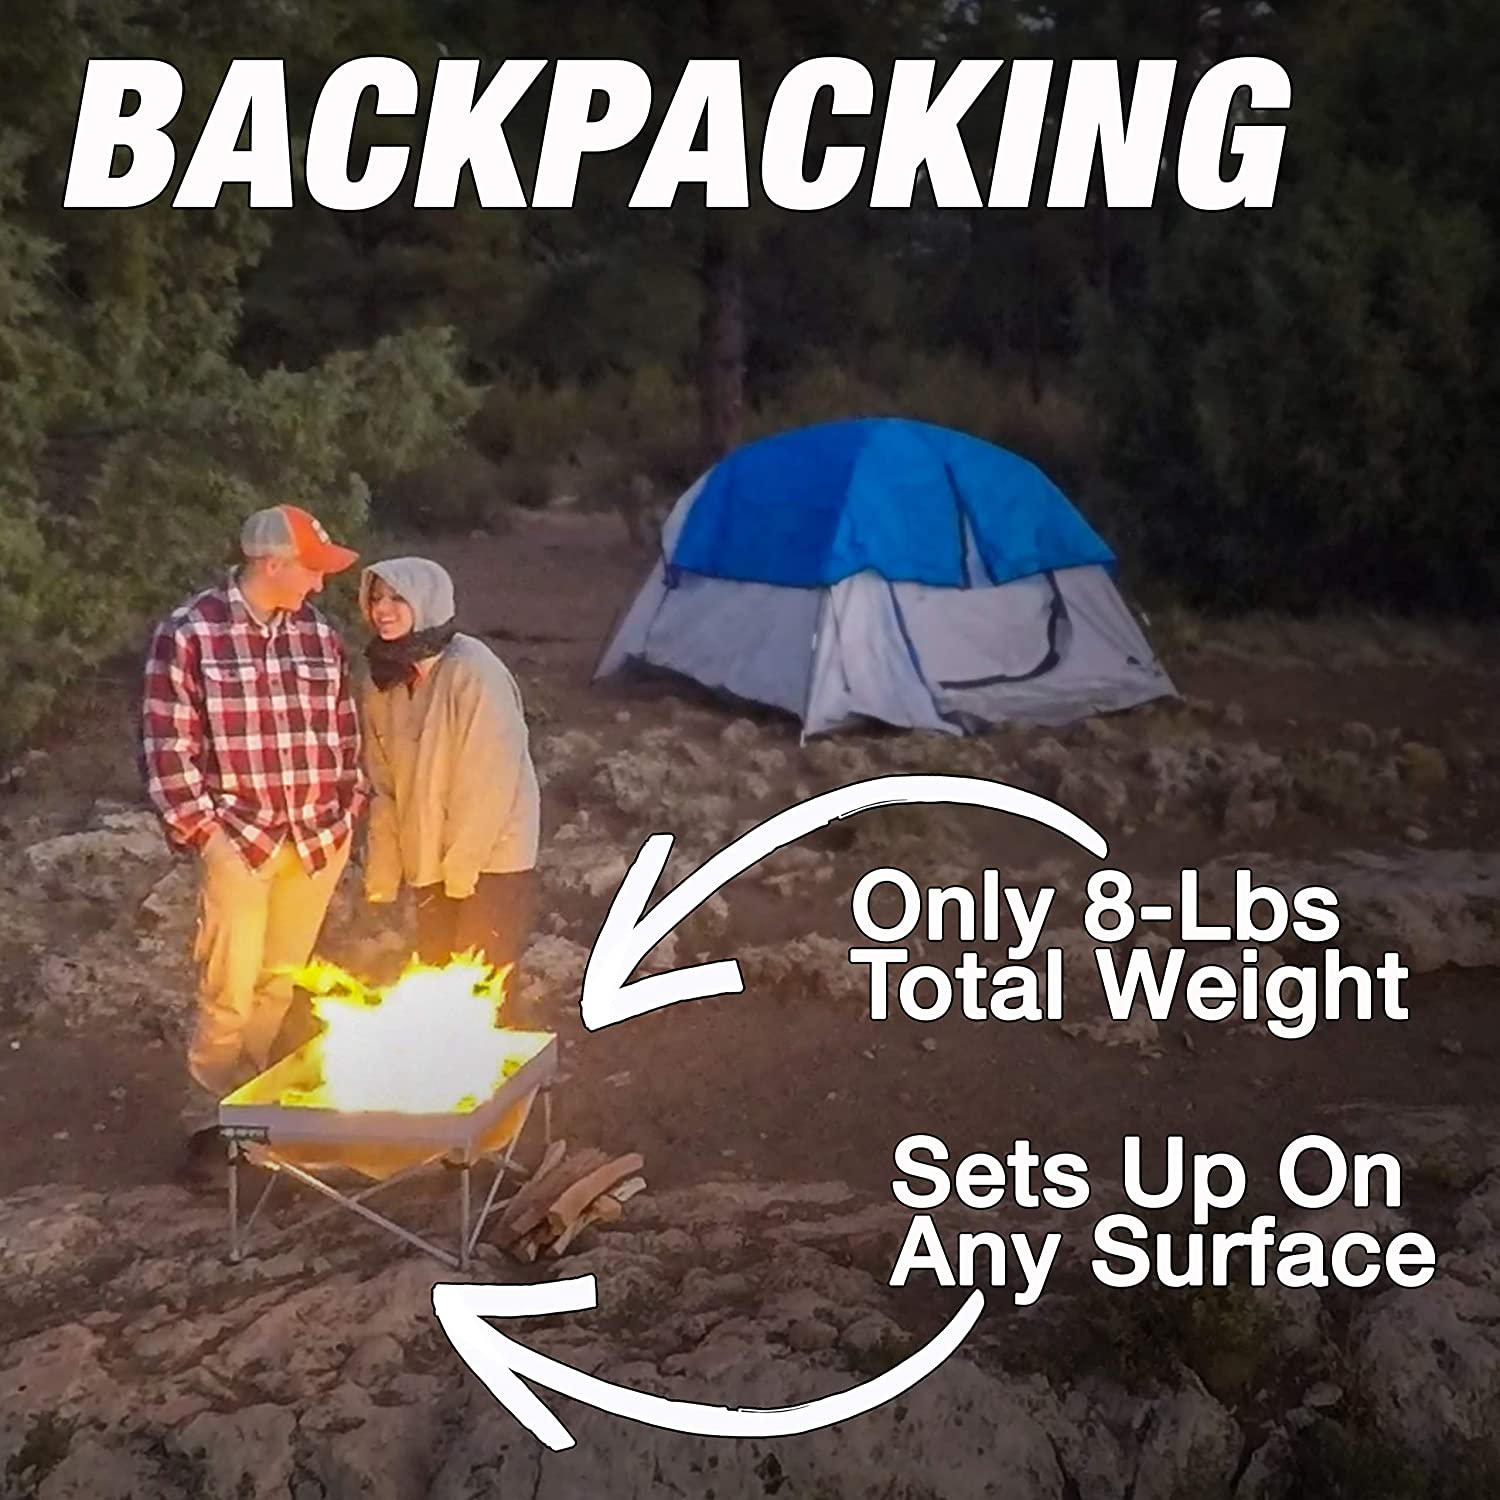 Fullsize 24 Inch Pop-Up Fire Pit Pop-Up Fire Pit + Heat Shield Weight 8 lbs Portable and Lightweight   Never Rust Fire Pit Included Heat Shield for Leave No Trace Fires